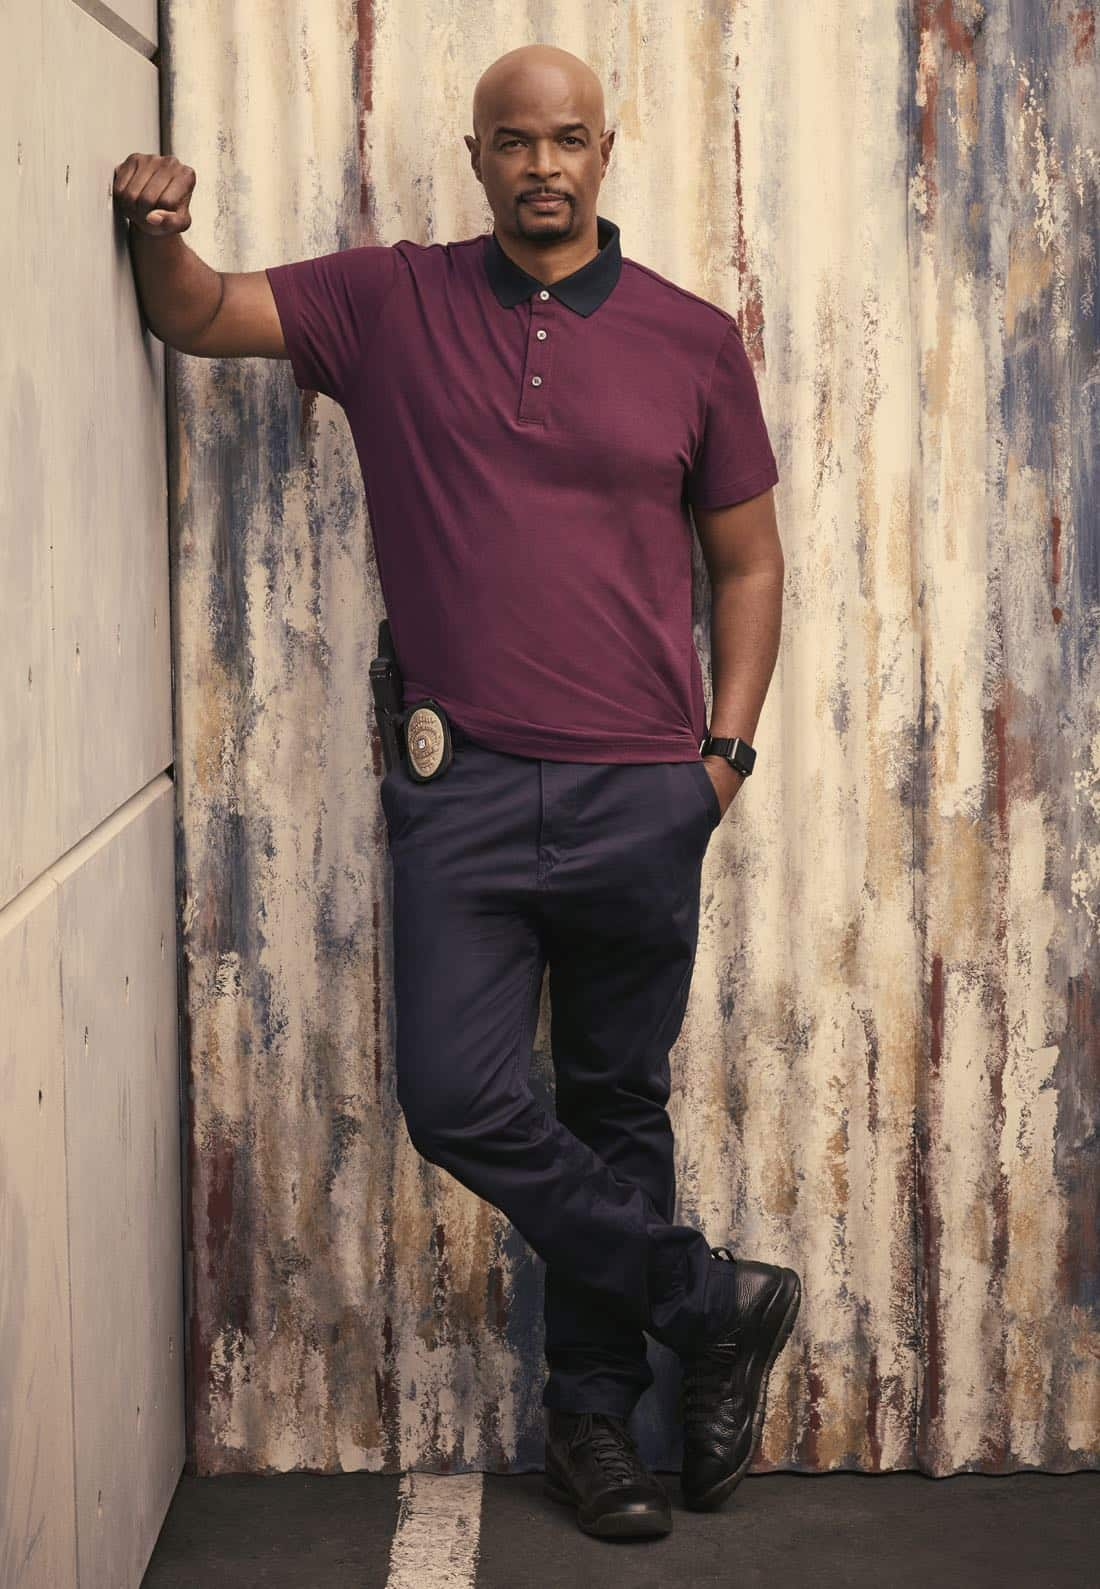 LETHAL WEAPON: Damon Wayans on Season Two of LETHAL WEAPON premiering Tuesday, Sept. 26 (8:00-9:00 PM ET/PT) on FOX. ©2017 Fox Broadcasting Co. CR: Brian Bowen Smith/FOX